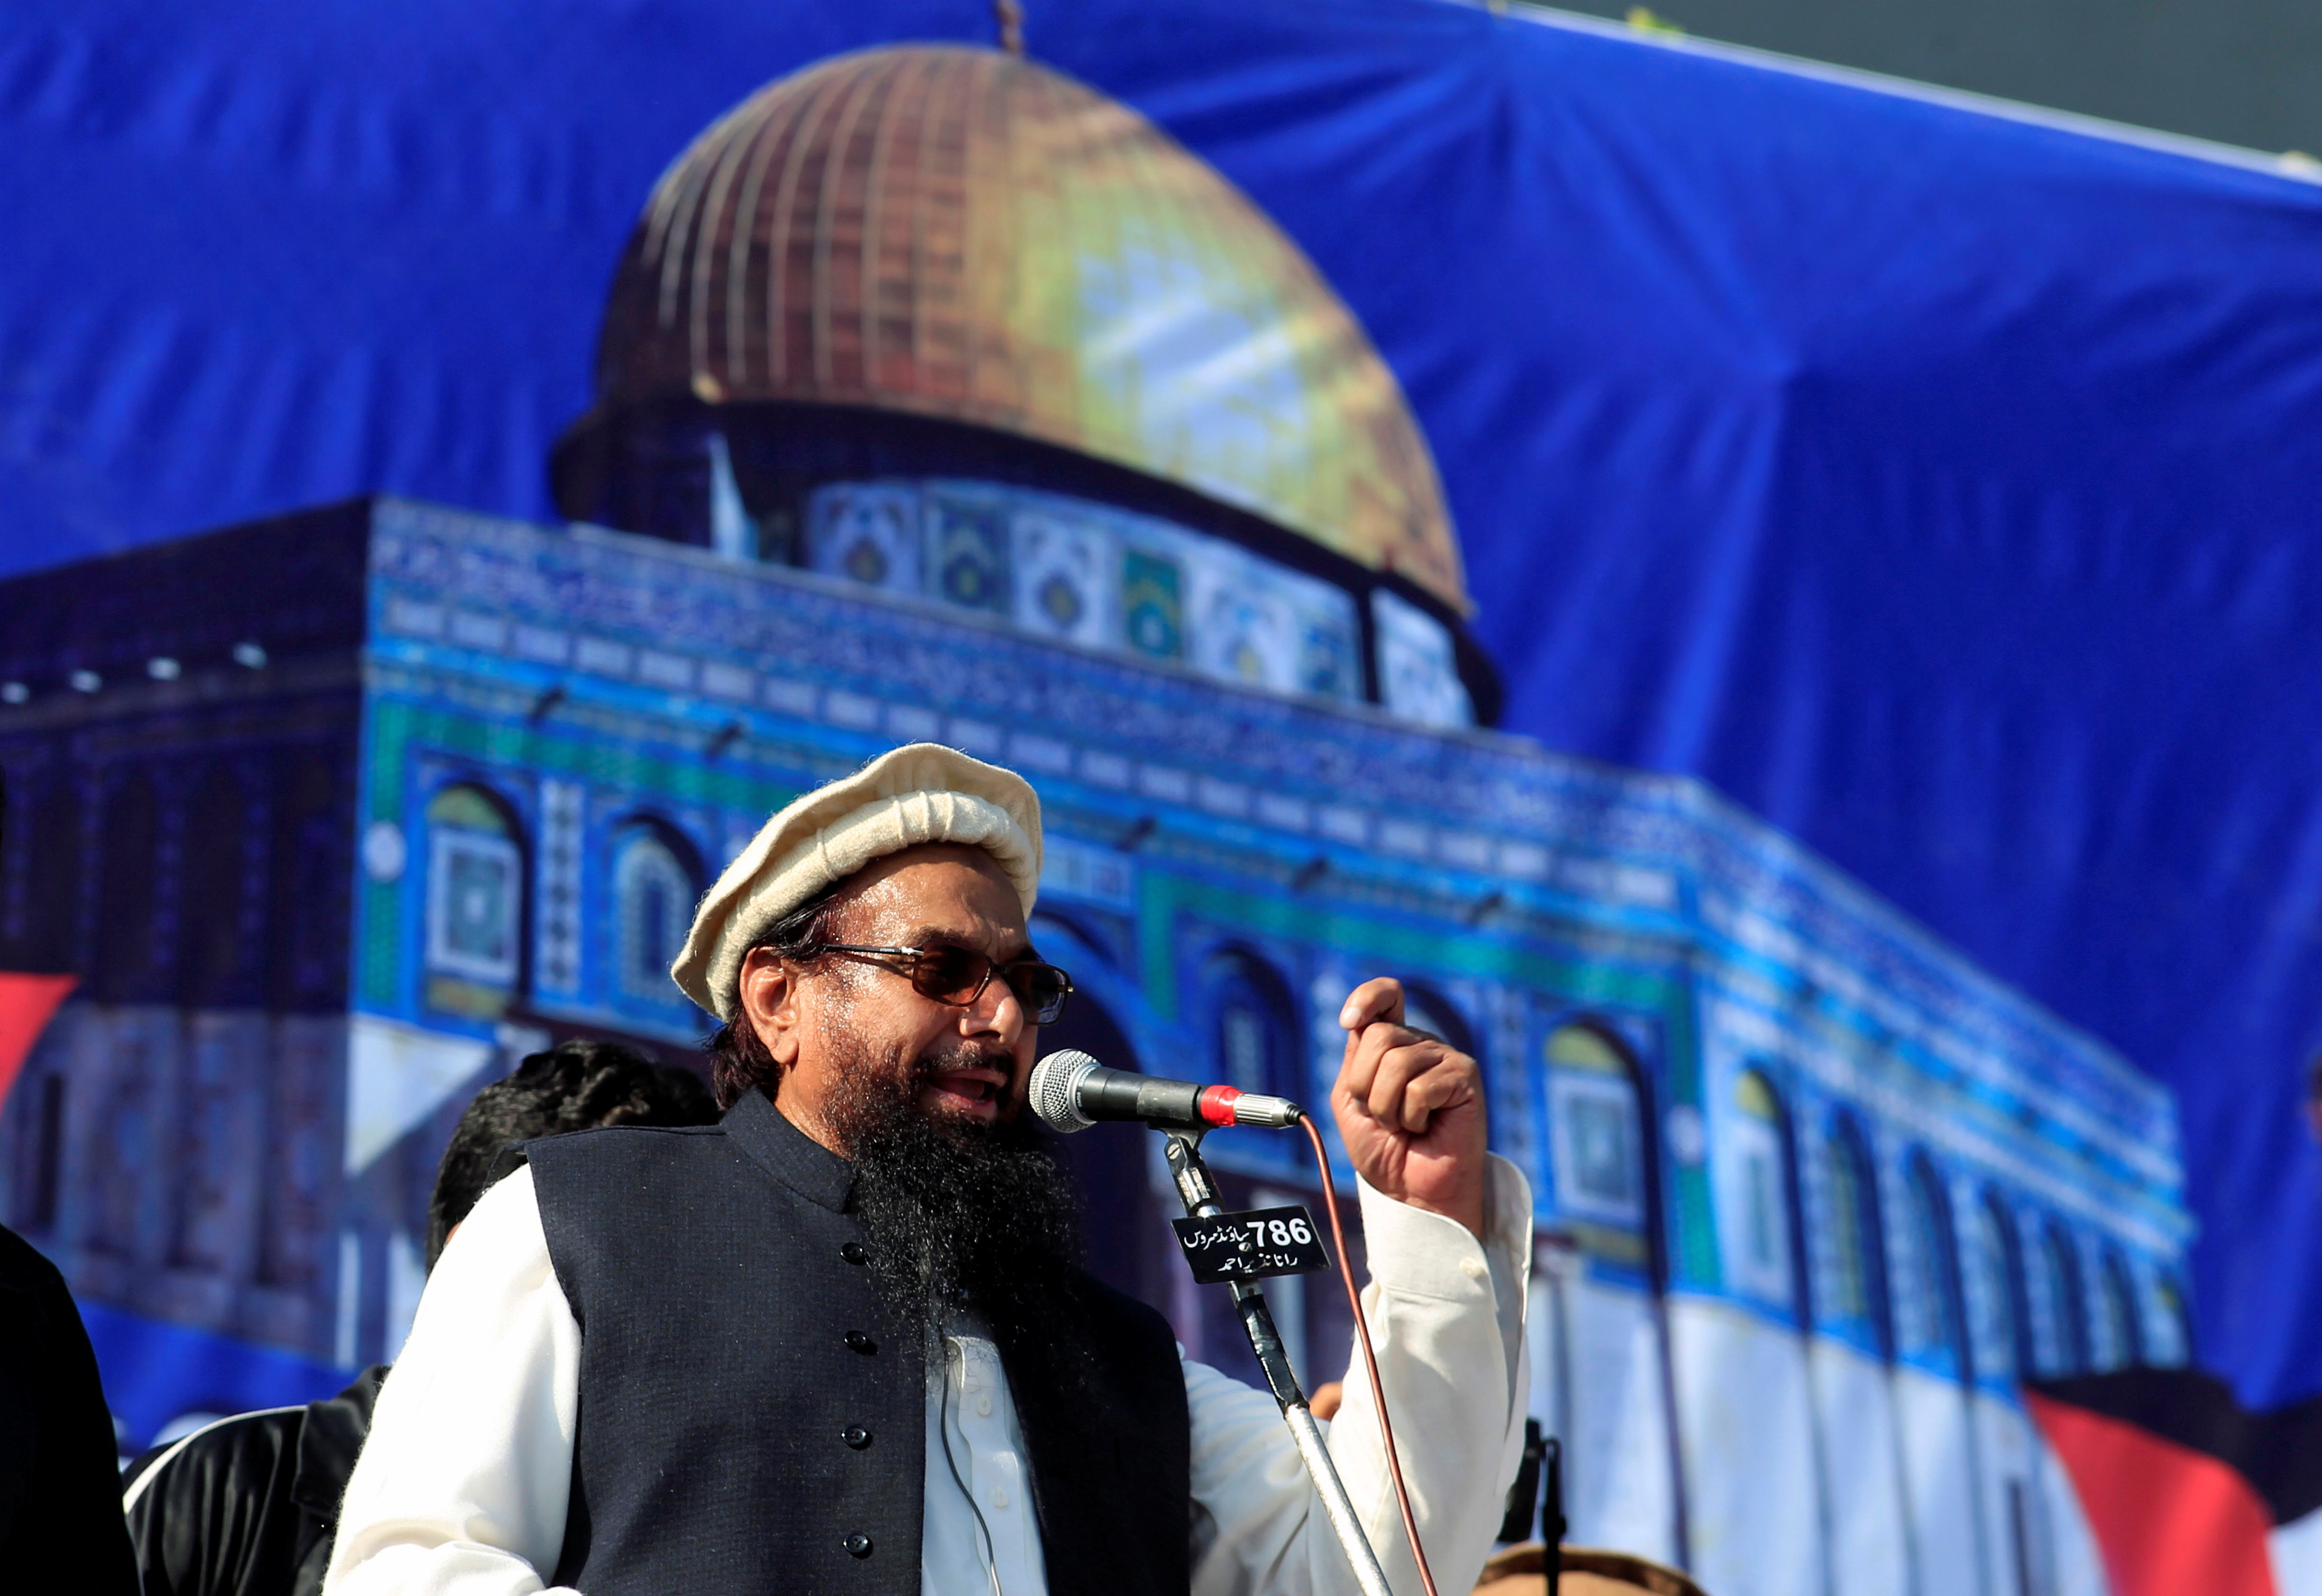 FILE PHOTO: Hafiz Muhammad Saeed (C), chief of the Islamic charity organisation Jamaat-ud-Dawa (JuD), speaks to supporters during a gathering to protest against Trump's decision to recognise Jerusalem as the capital of Israel, in Rawalpindi, Pakistan December 29, 2017. REUTERS/Faisal Mahmood